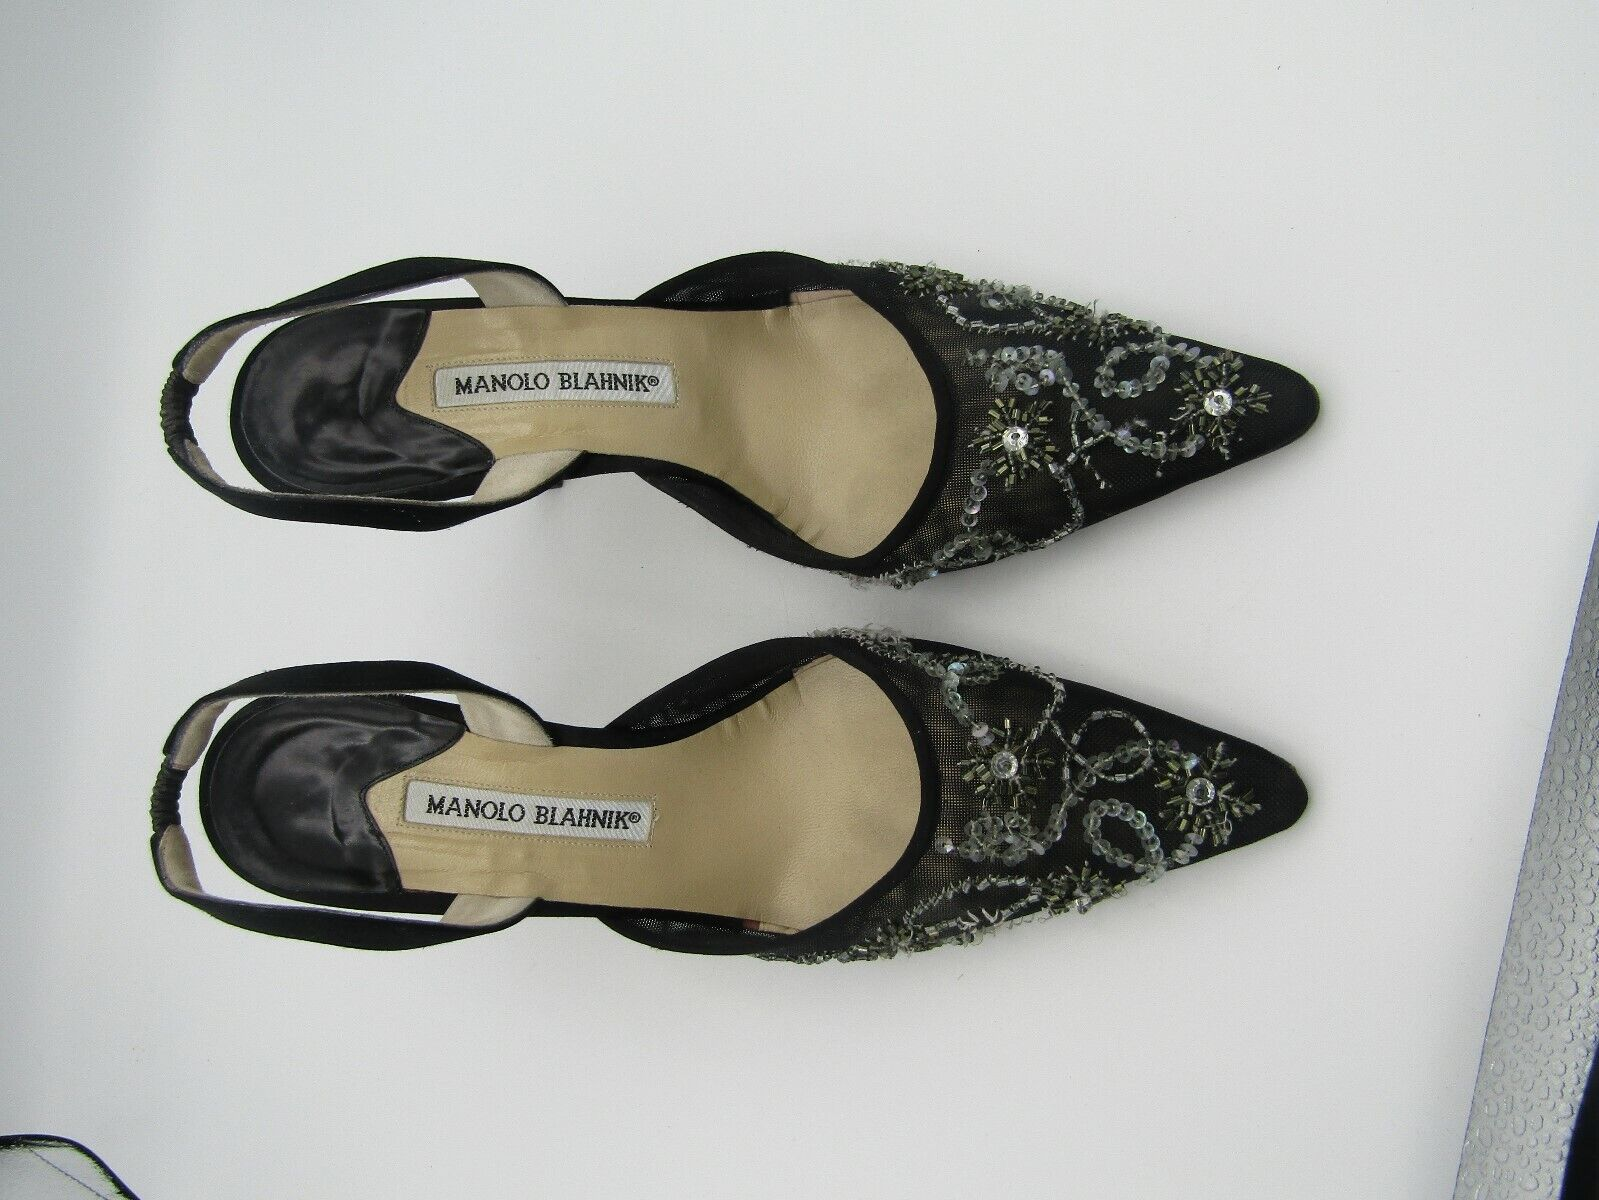 VINTAGE ESTATE MANOLO BLAHNIK BLACK FLORAL MESH PUMPS w SEQUINS SIZE 38 ITALY